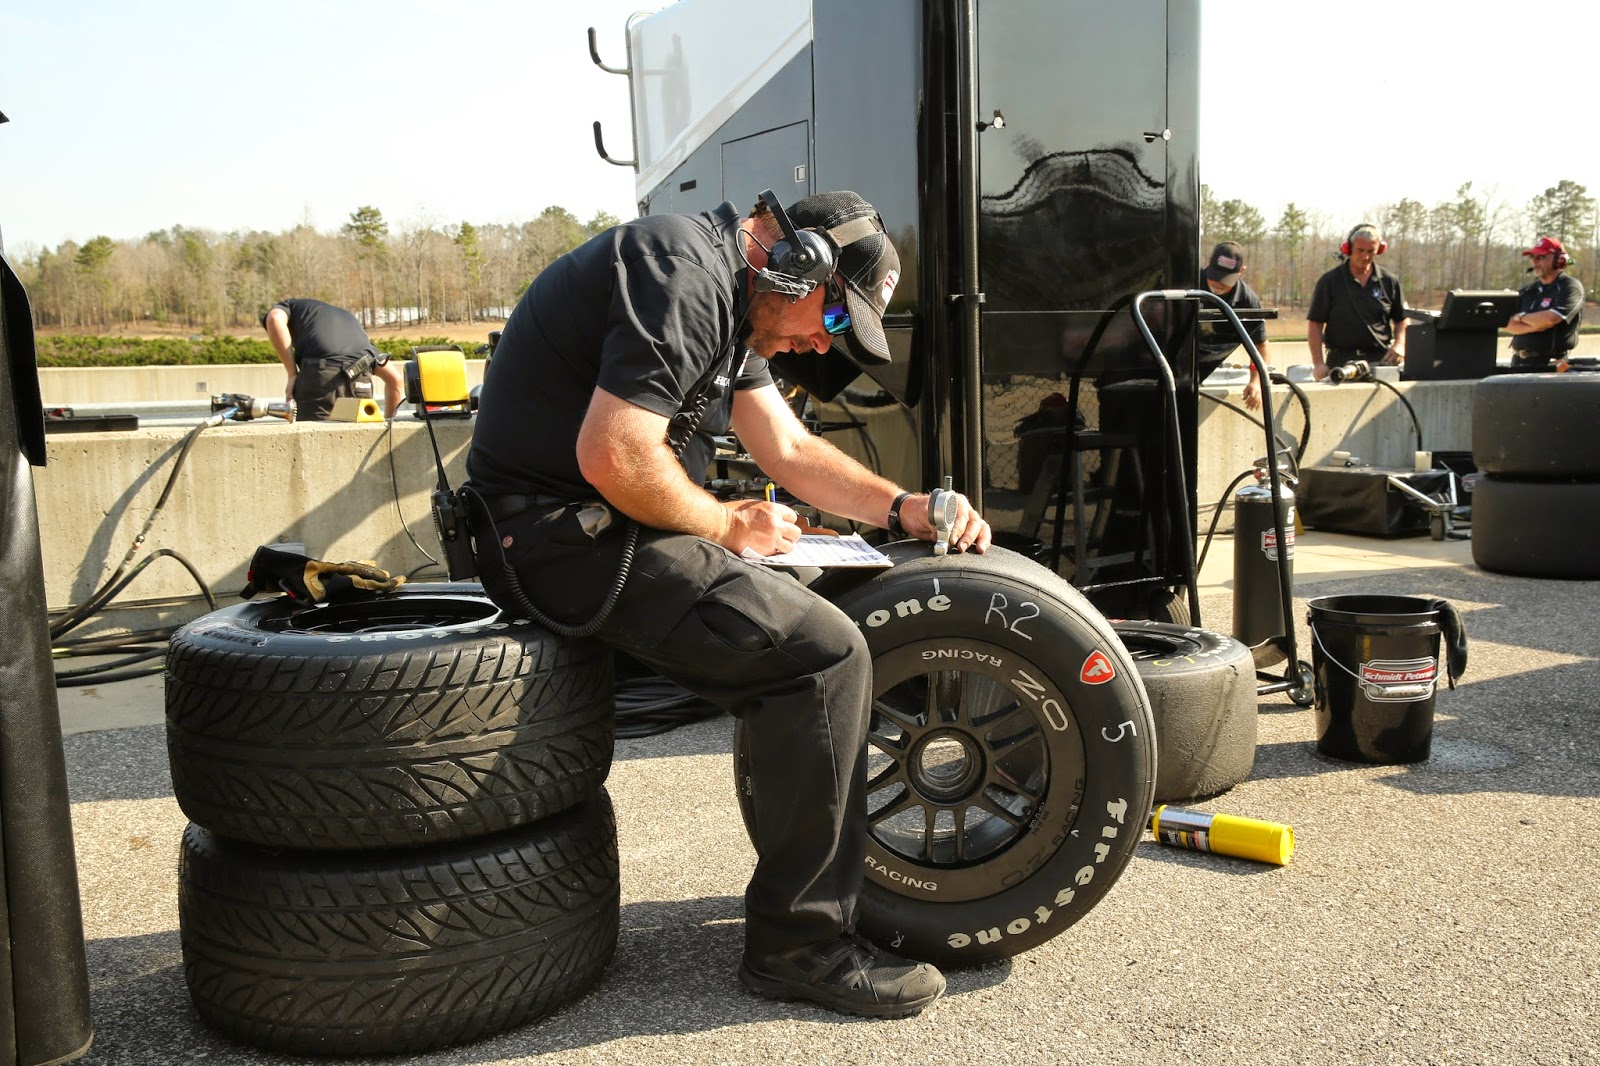 Schmidt Peterson Motorsports engineer records tire data during Tuesday's Open Test session at Barber Motorsports Park